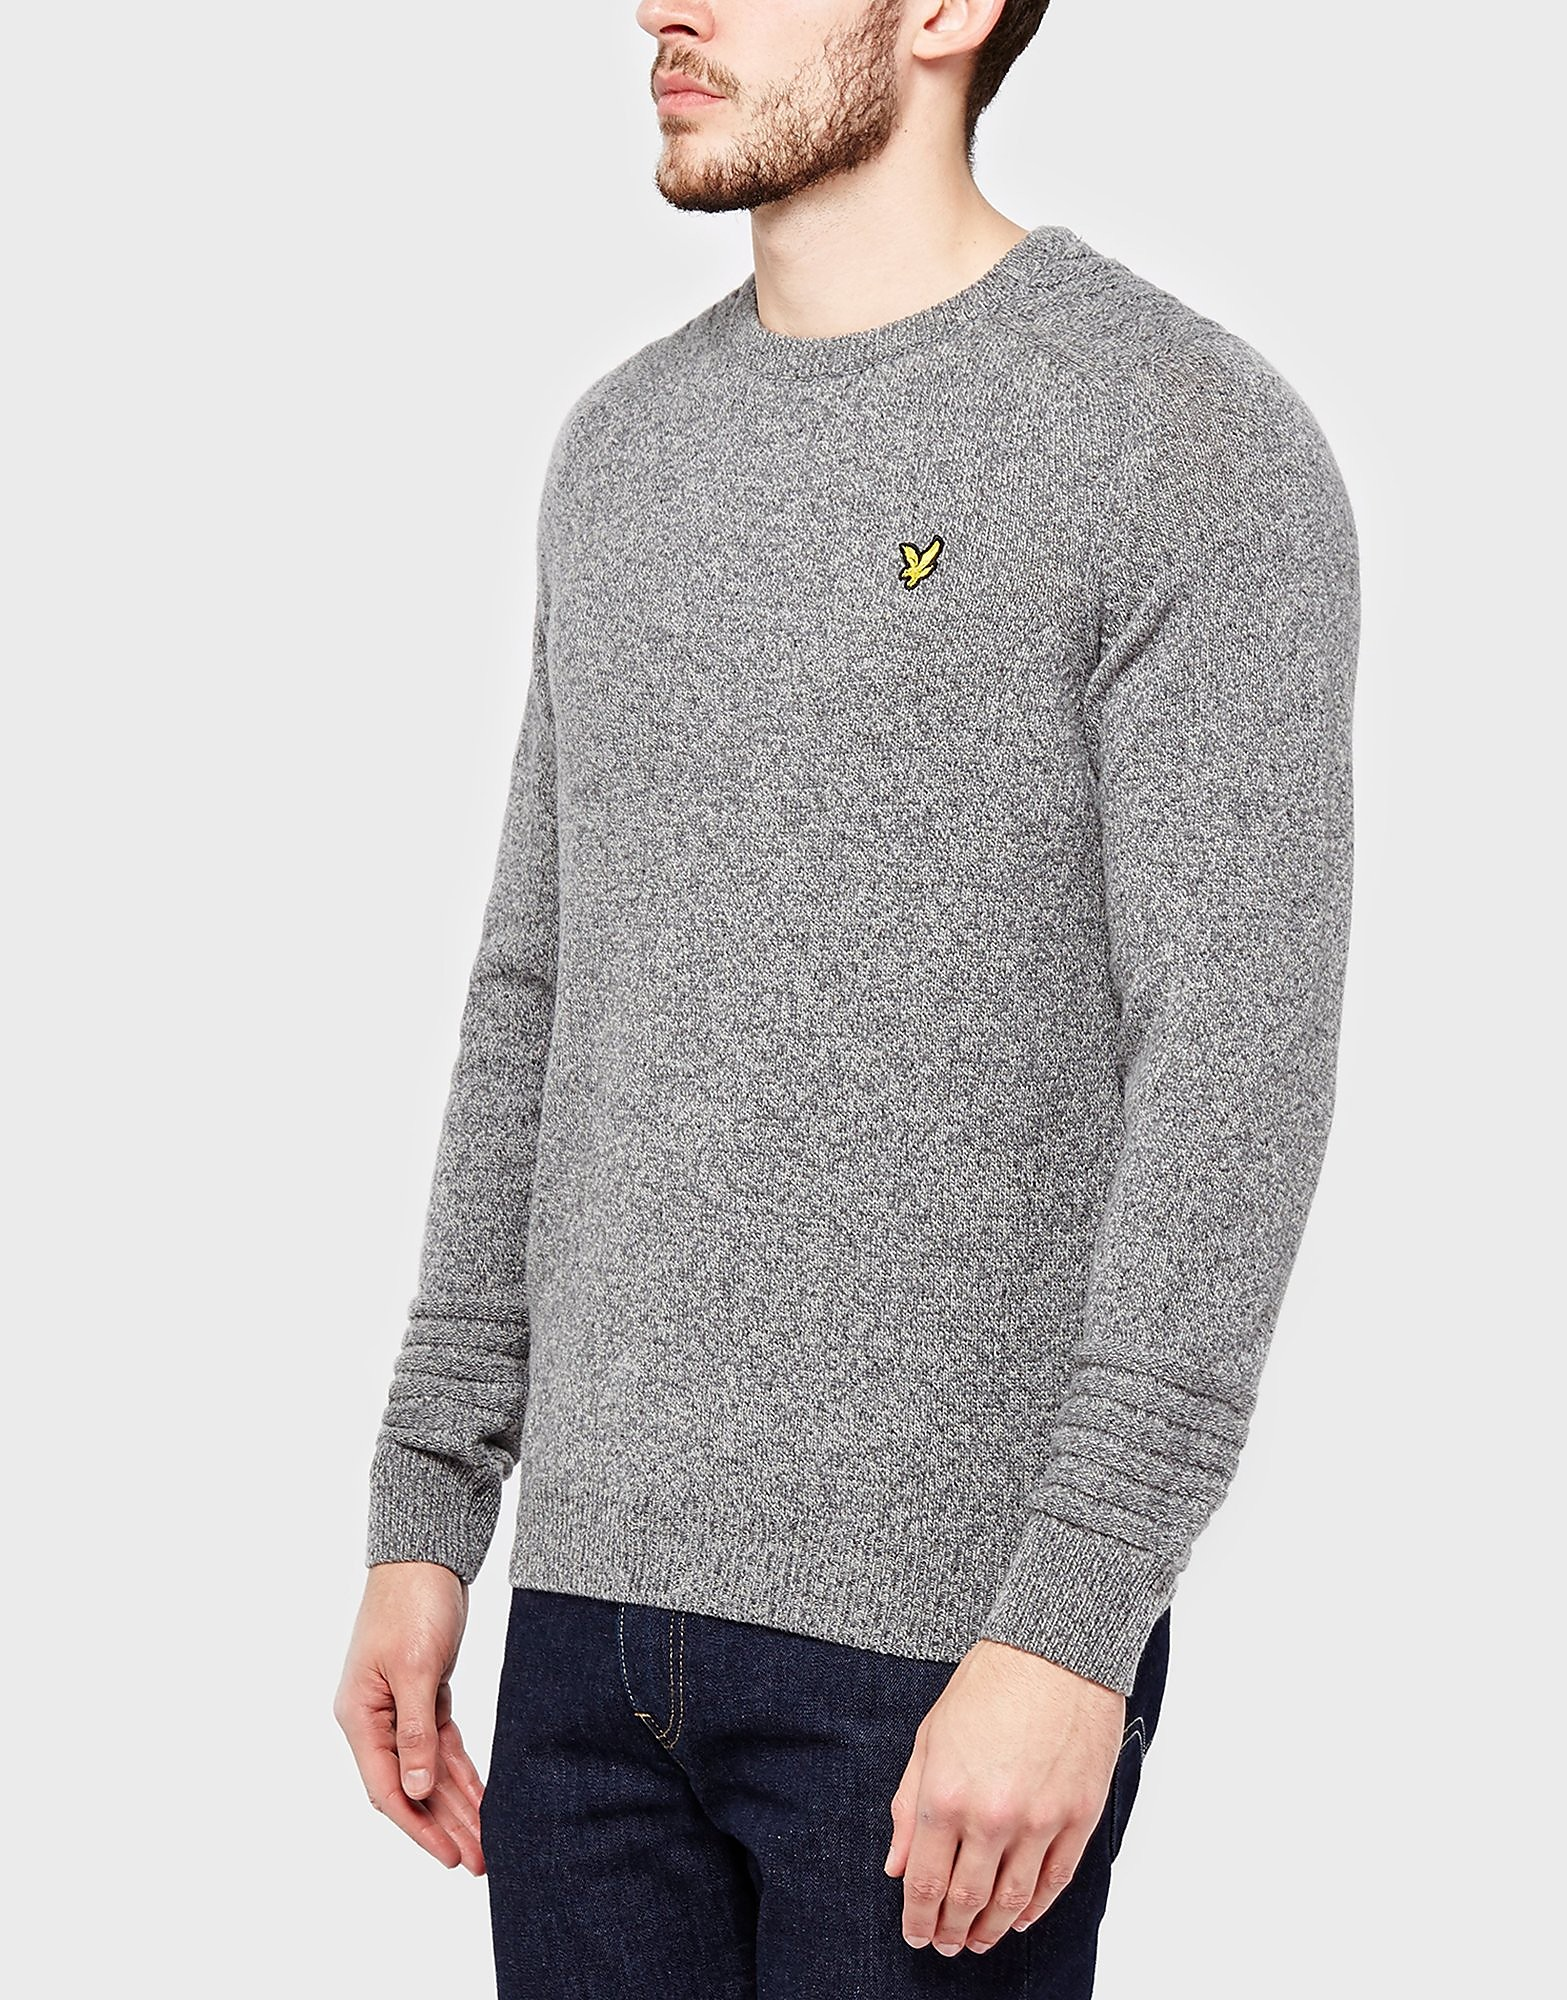 Lyle & Scott Links Crew Knit